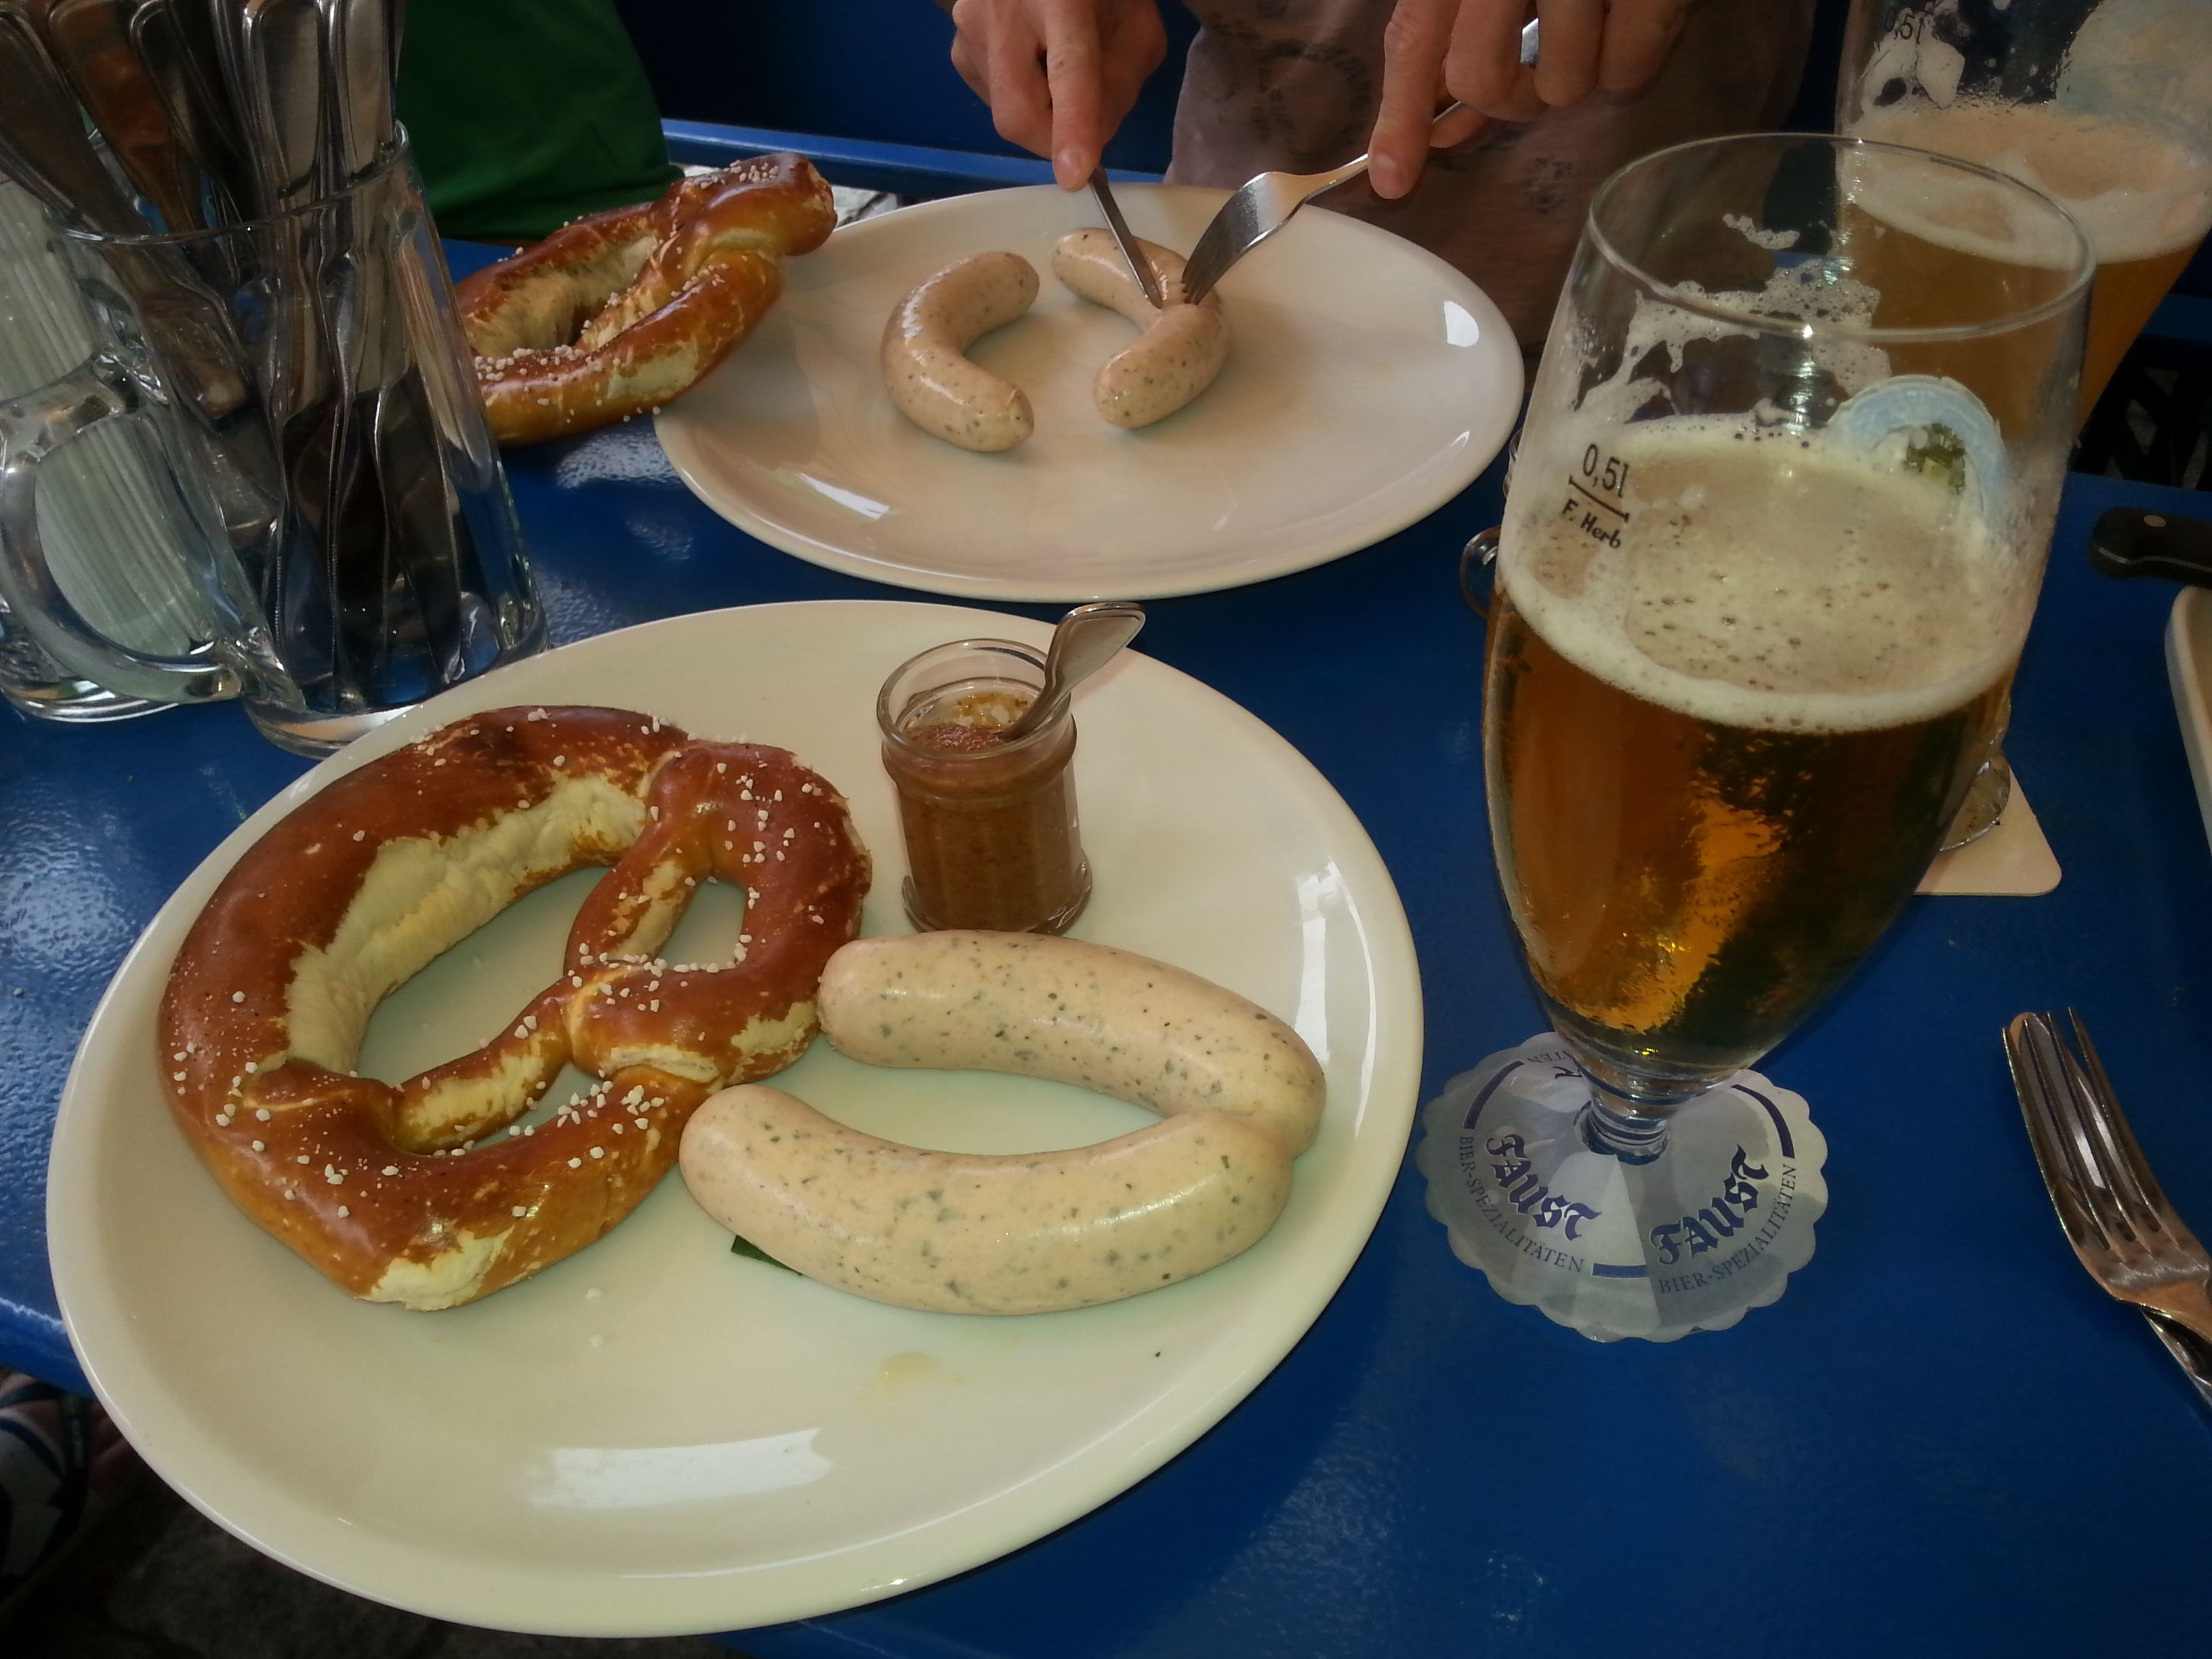 Traditional Bavarian breakfast: a pint of Weiss Beer, 2 Weiswurst (boiled) and a Brezn (a large pretzel) served with a sweet mustard on the side.